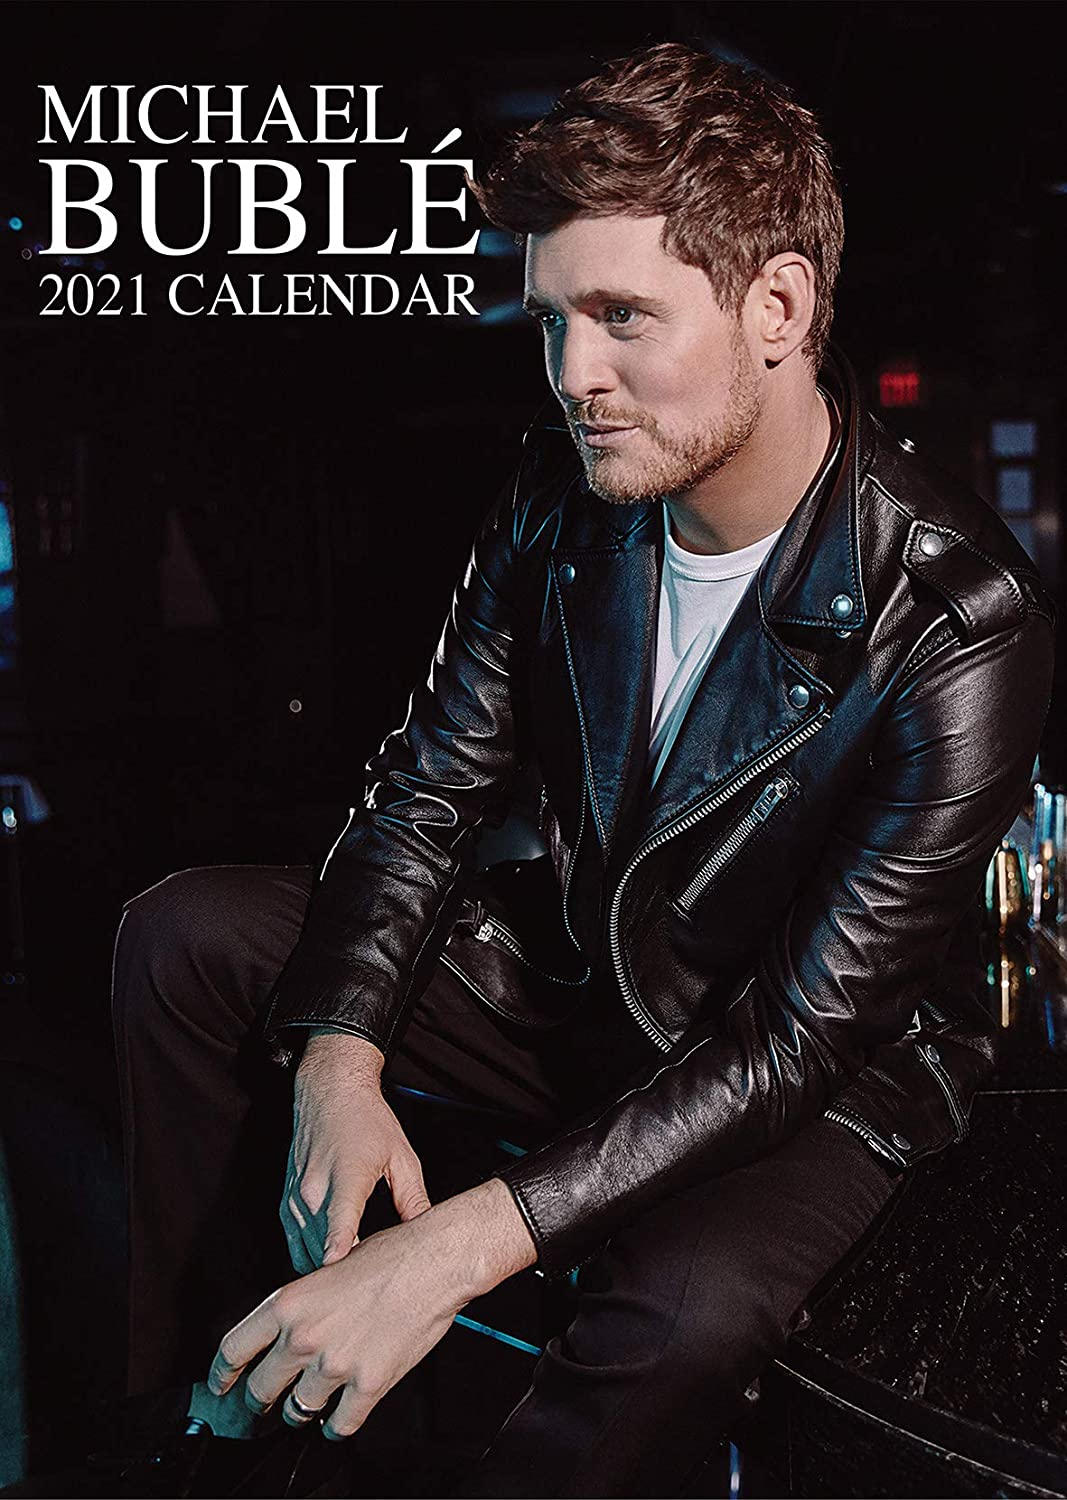 When Is Michael Buble Christmas Special 2021 Michael Buble 2021 Calendar A3 Amazon Co Uk Office Products